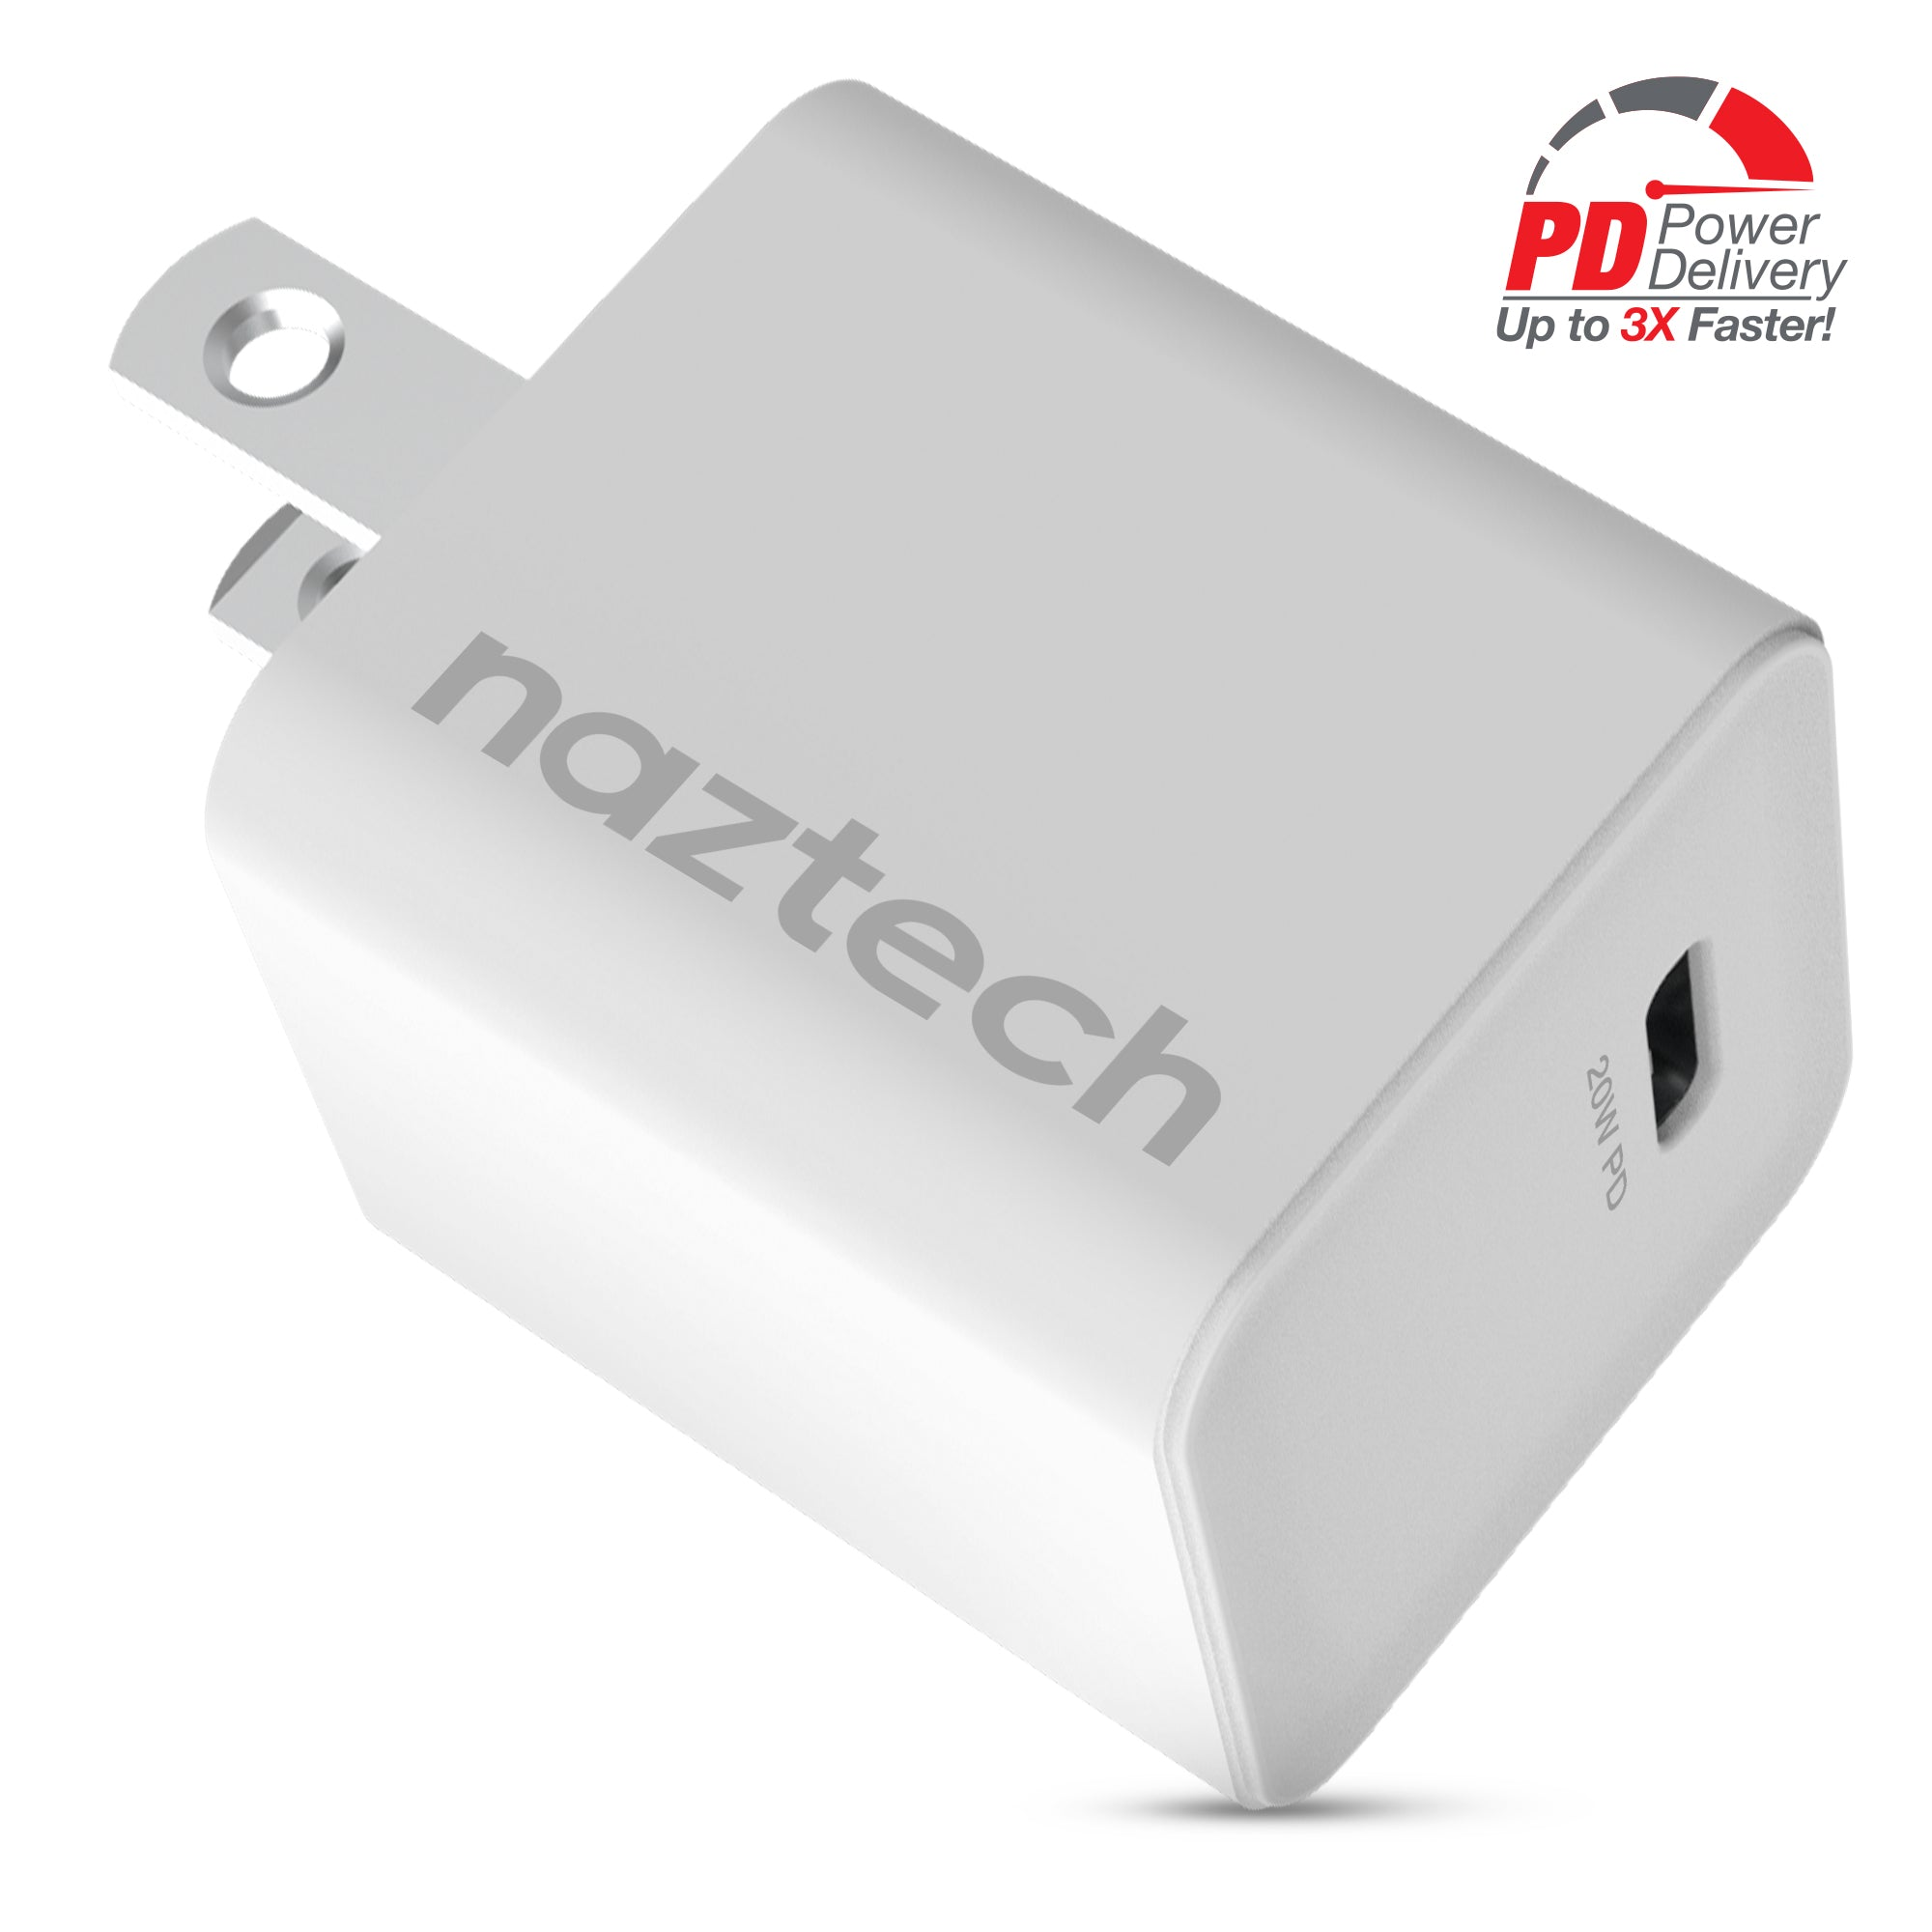 20W USB-C PD mini Fast Wall Charger- White